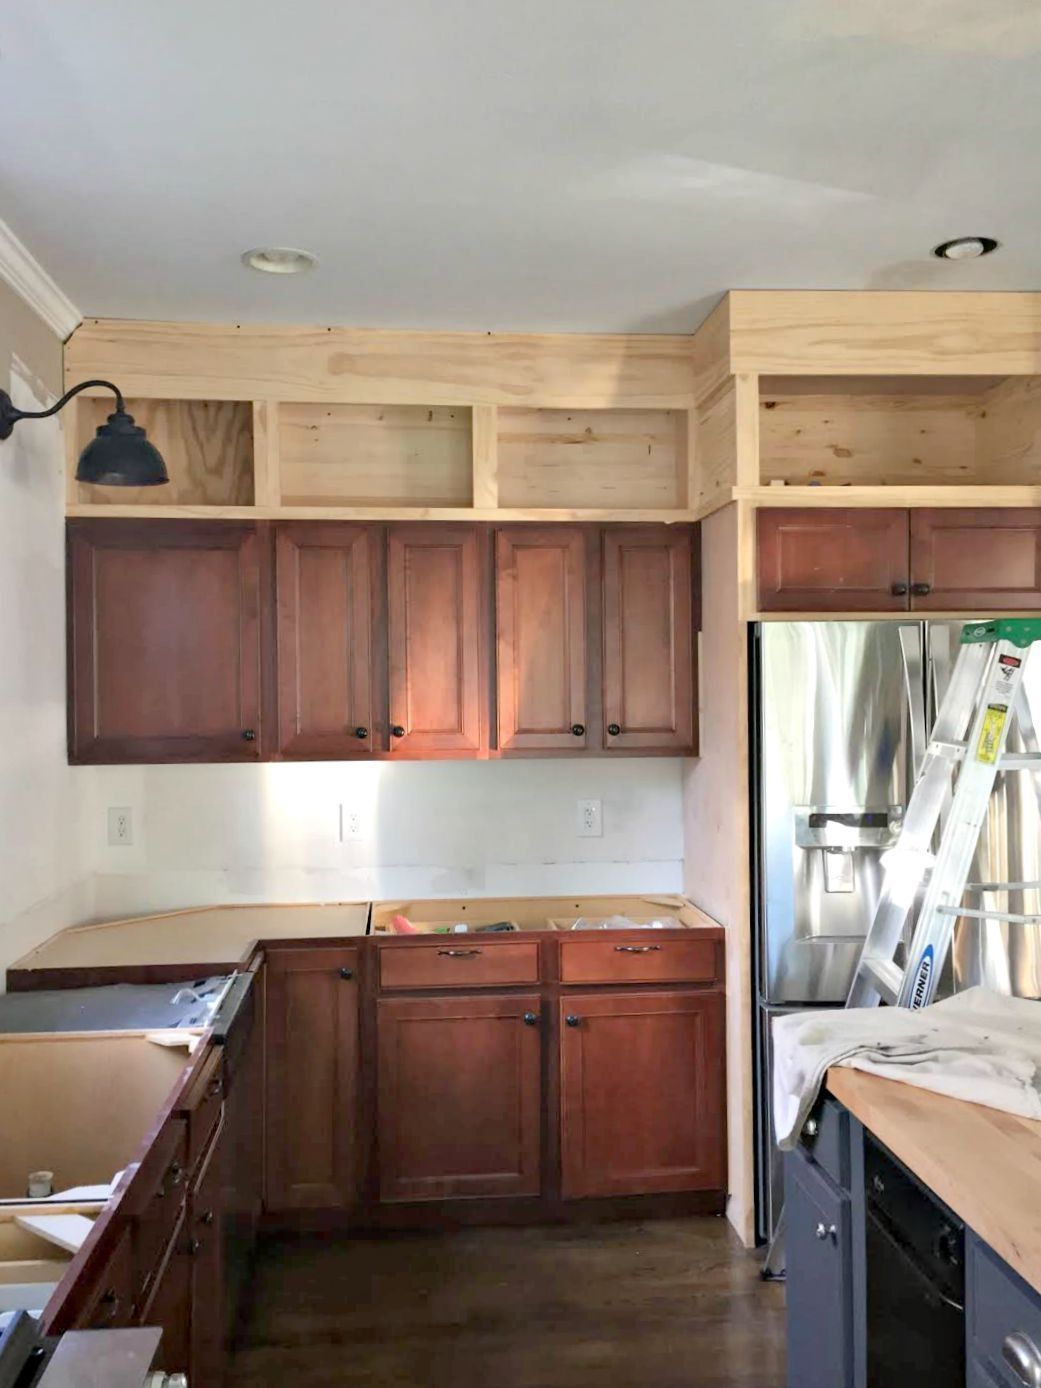 Kitchen Cabinet Height 9 Foot Ceilings Most Of Home The Kitchen Cabinet Is The In Kitchen Cabinets To Ceiling Building Kitchen Cabinets Diy Kitchen Cabinets